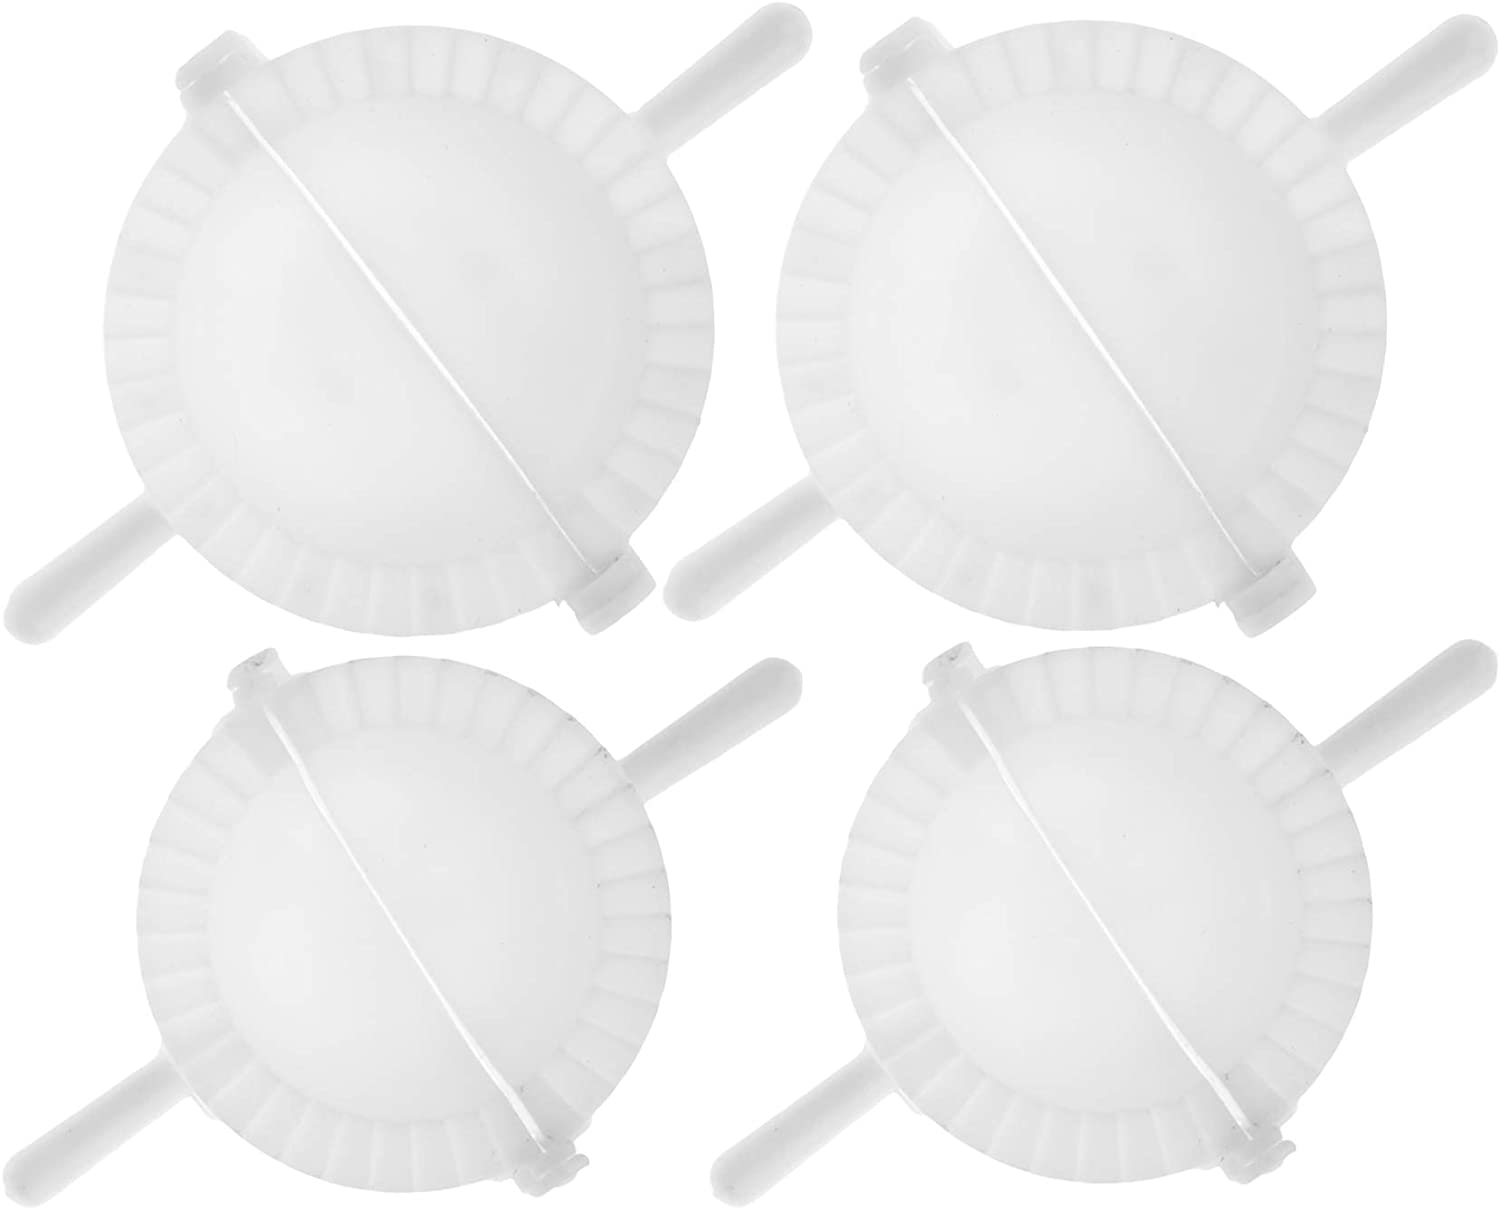 Easy Large Dumpling Cutter and Press - Pack of 4 - Big Plastic Maker Mini Ravioli and Dumplings Mold